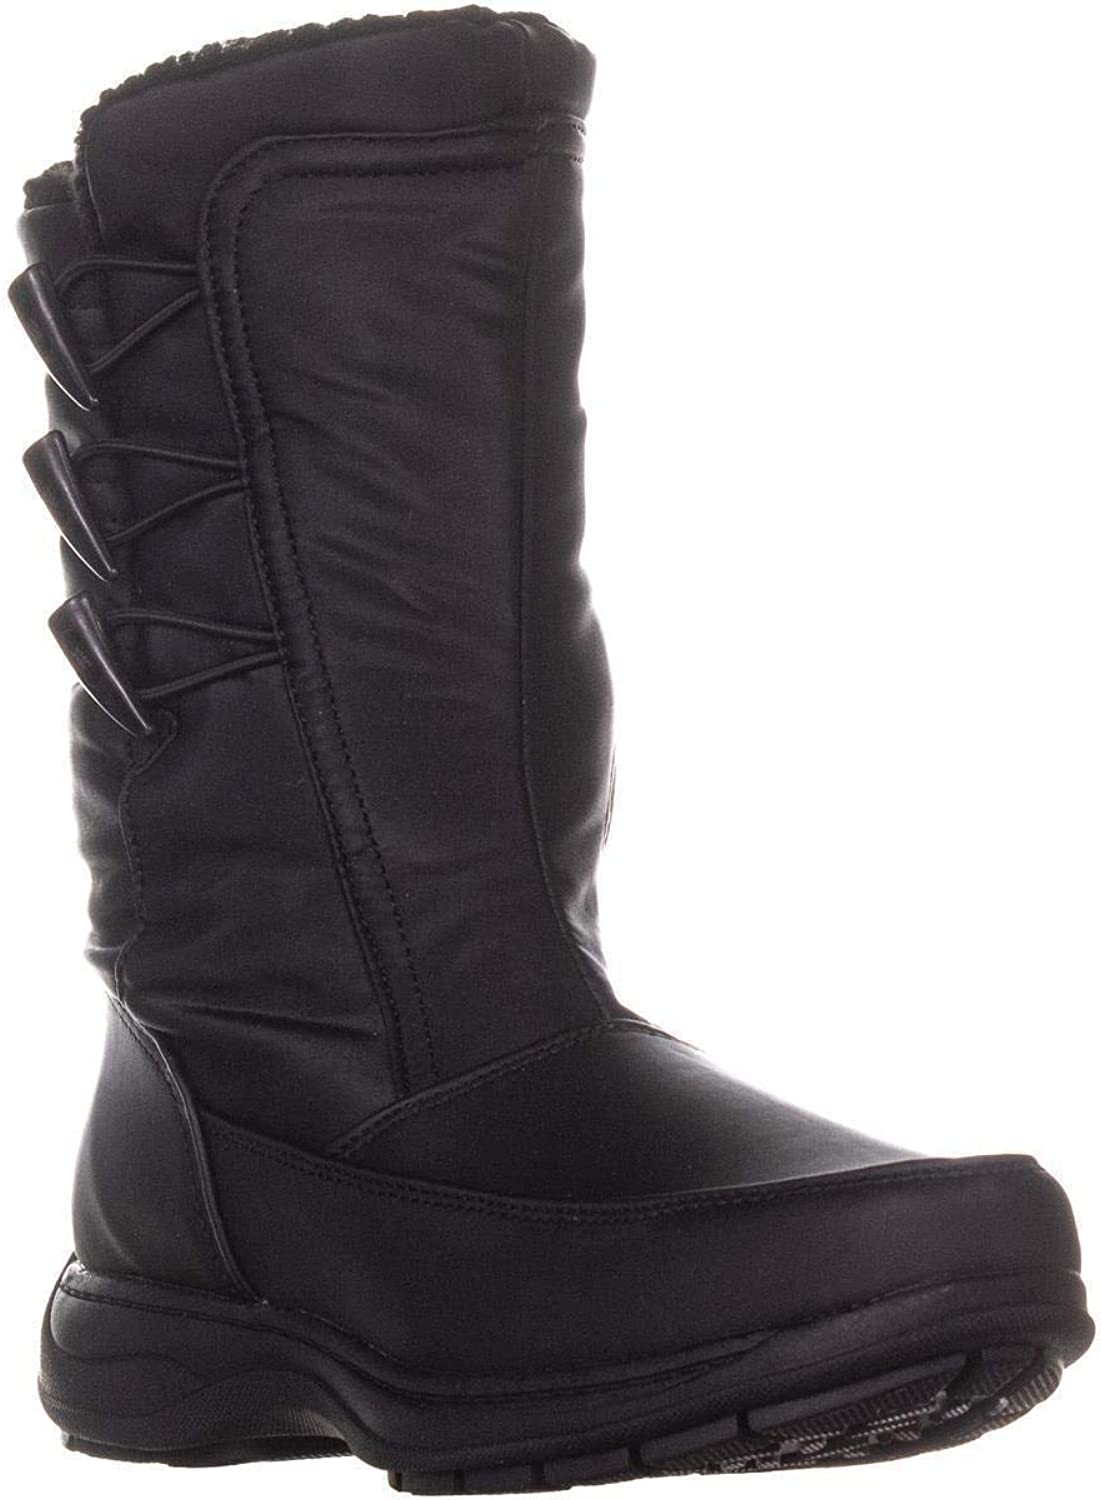 Sporto Dana Mid Calf Winter Boots, Black